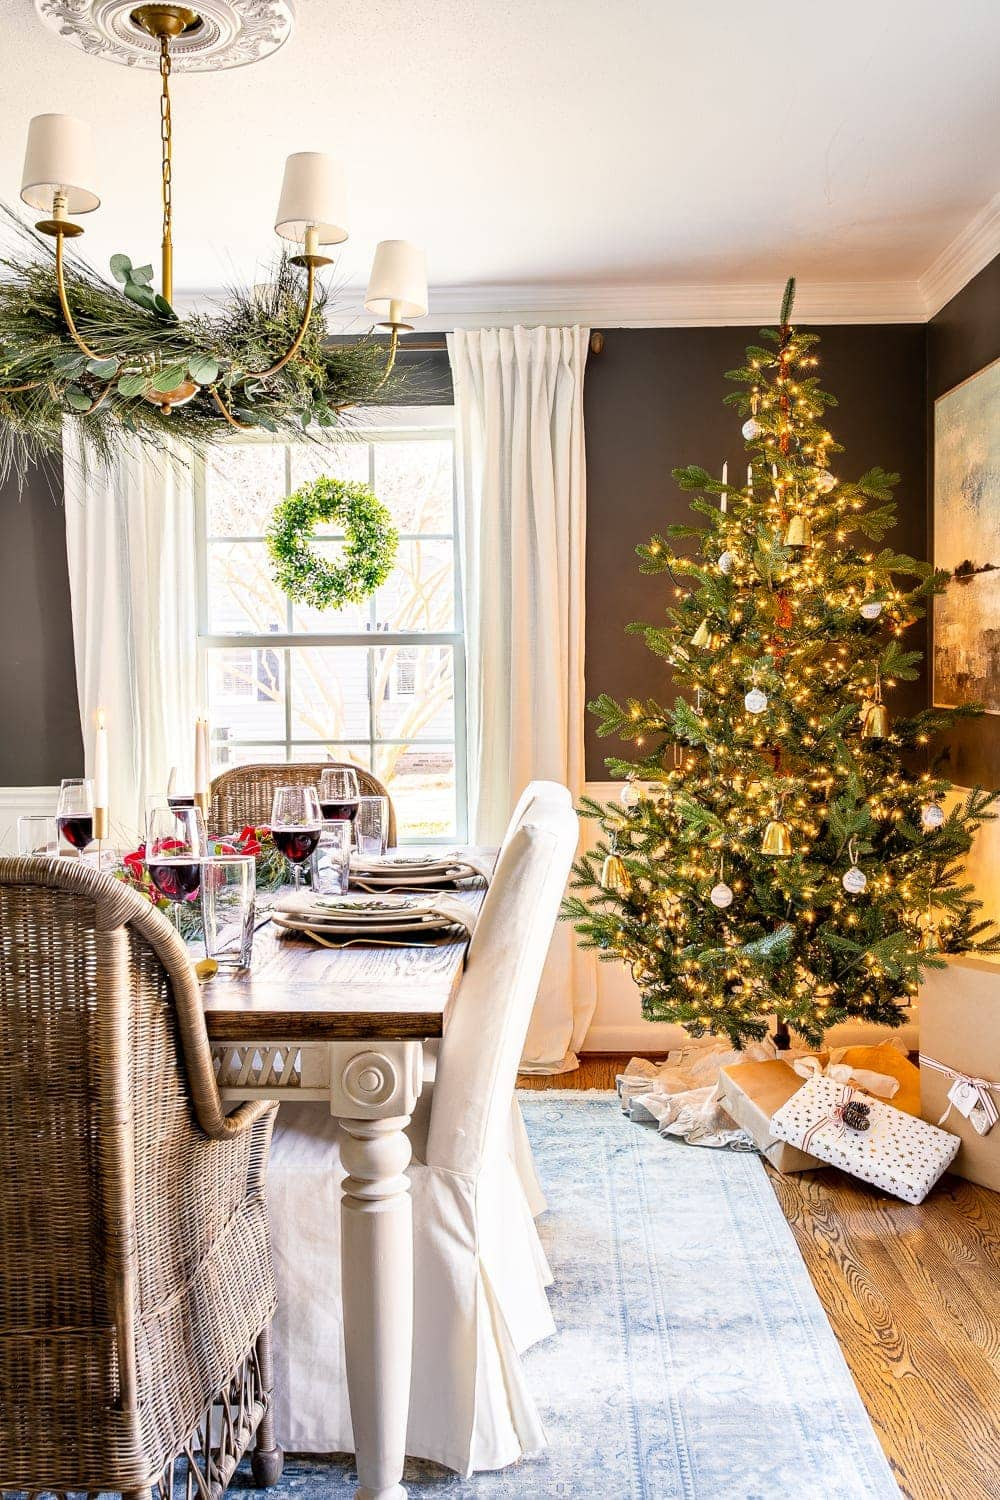 Christmas decorating ideas   Christmas tree in the dining room with garland on a chandelier and wreaths on windows